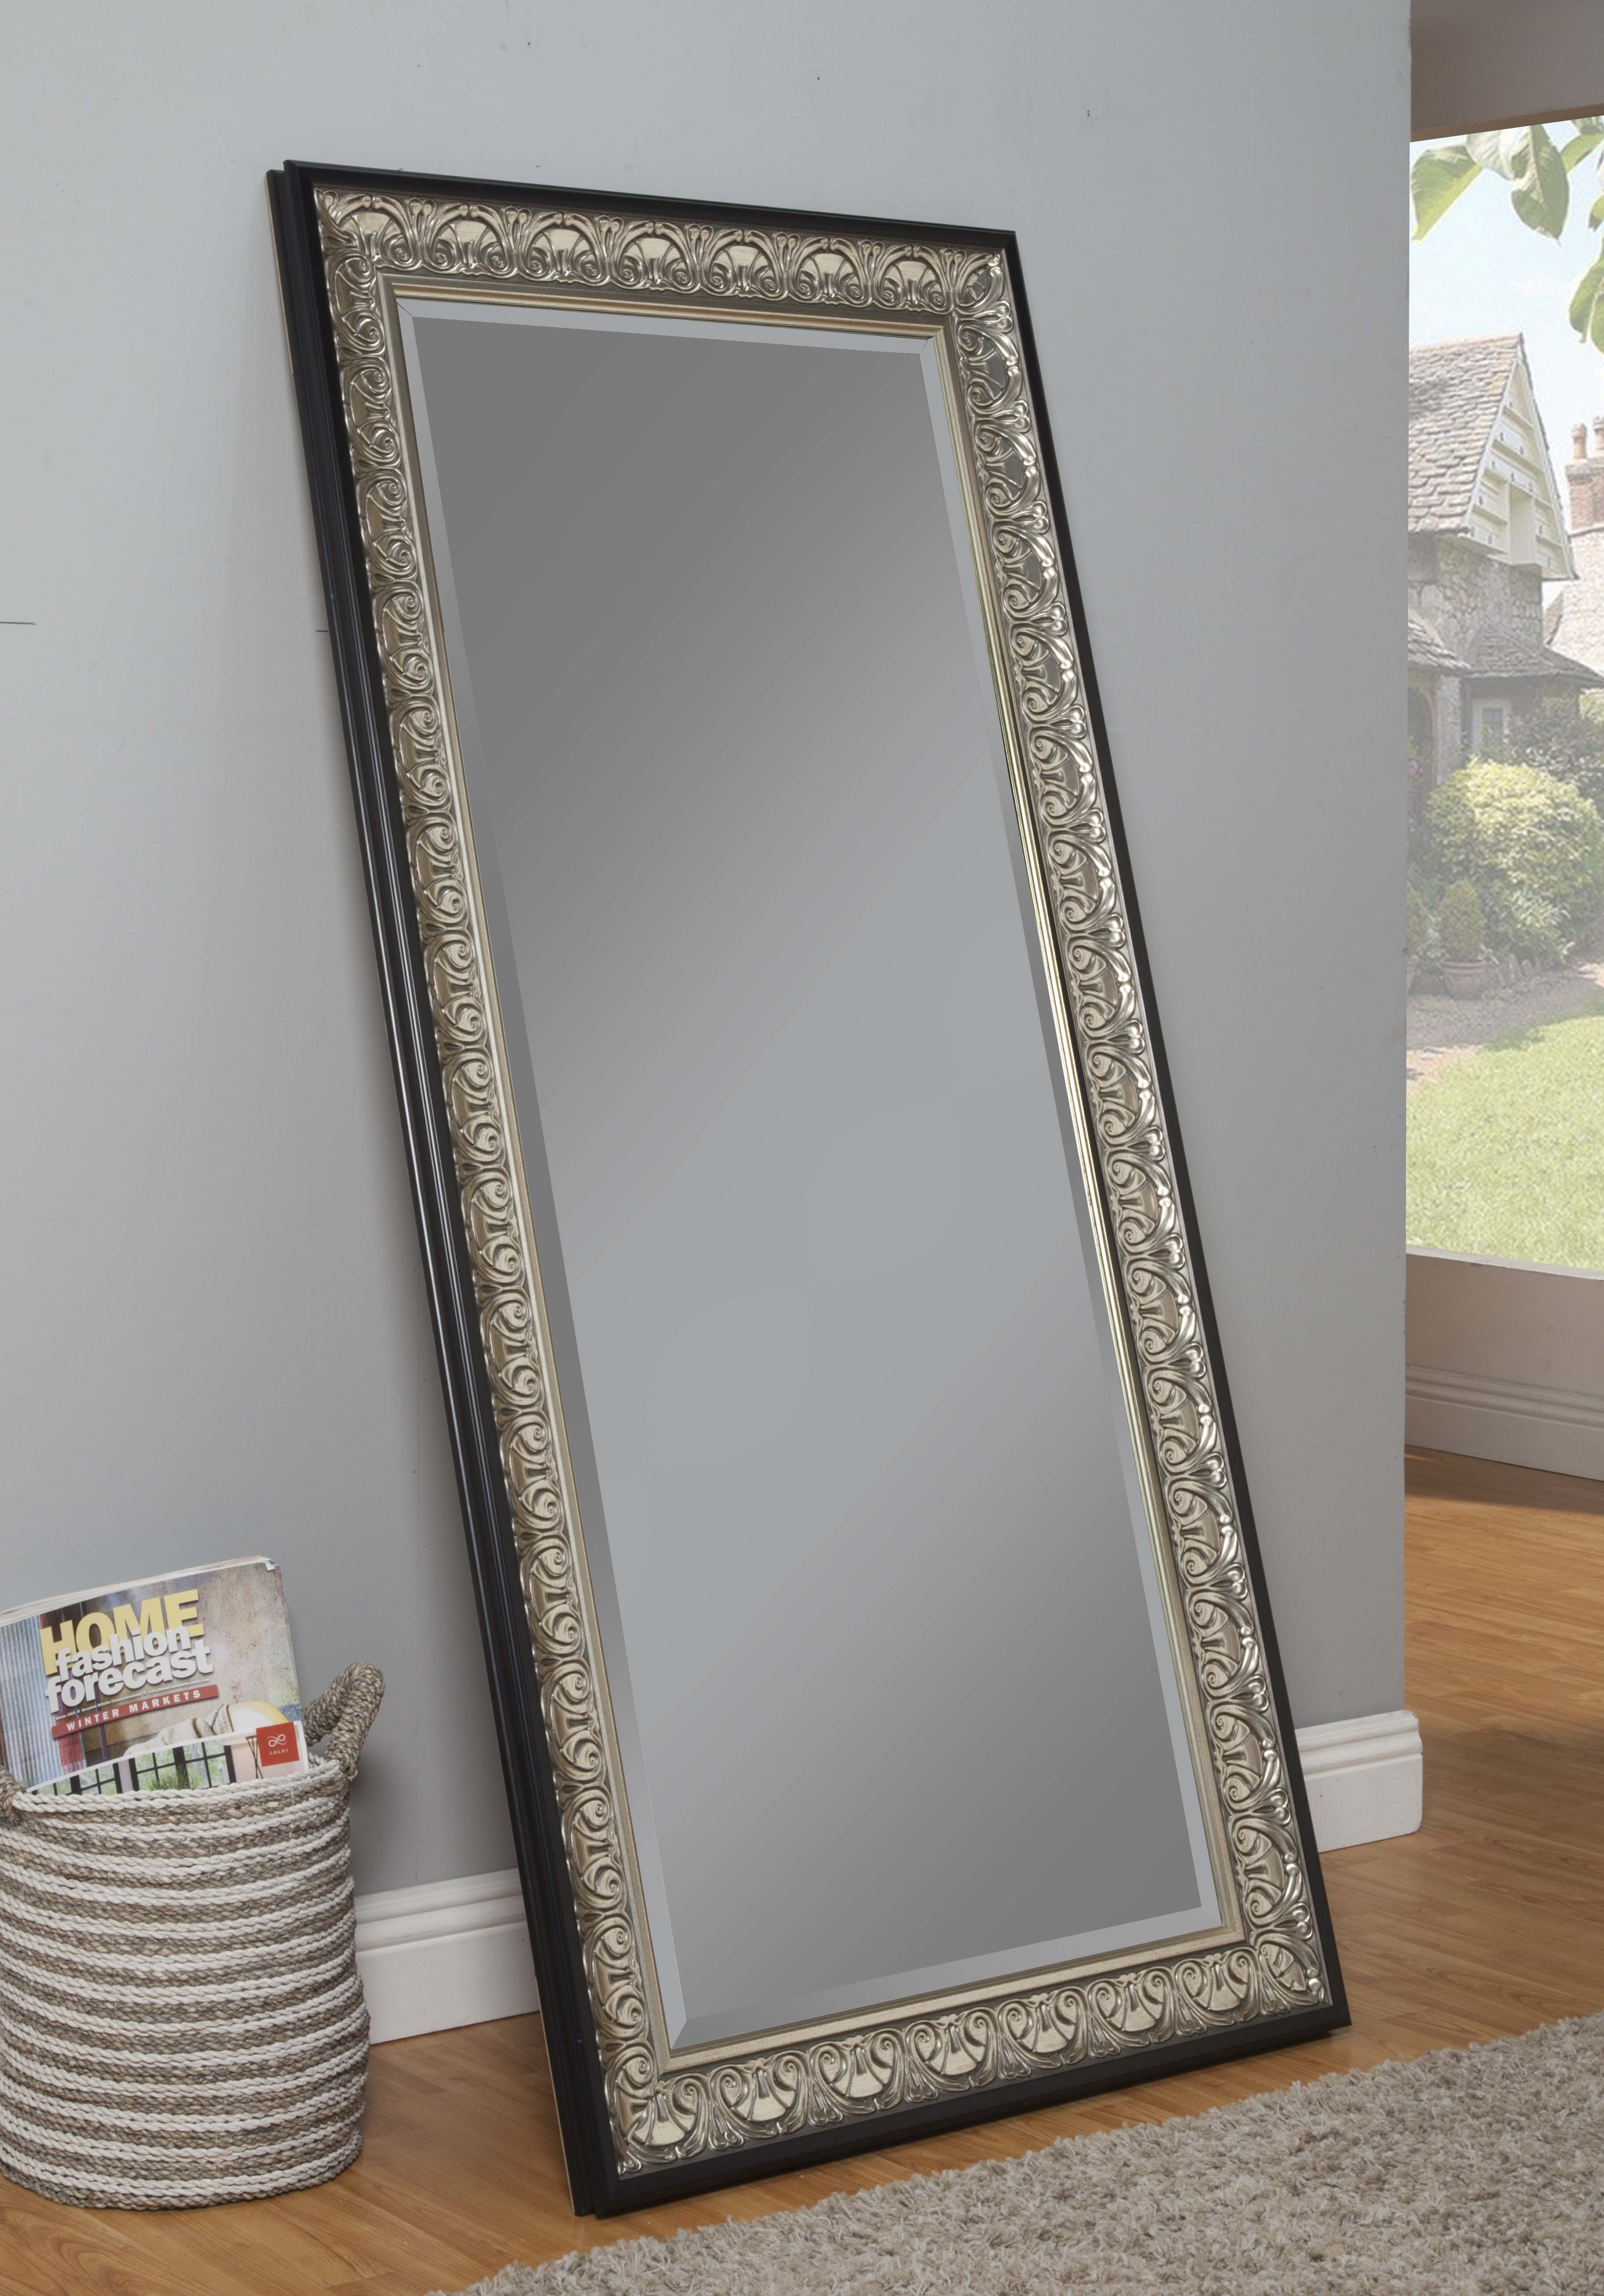 Boyers Wall Mirror Within Boyers Wall Mirrors (Image 7 of 20)